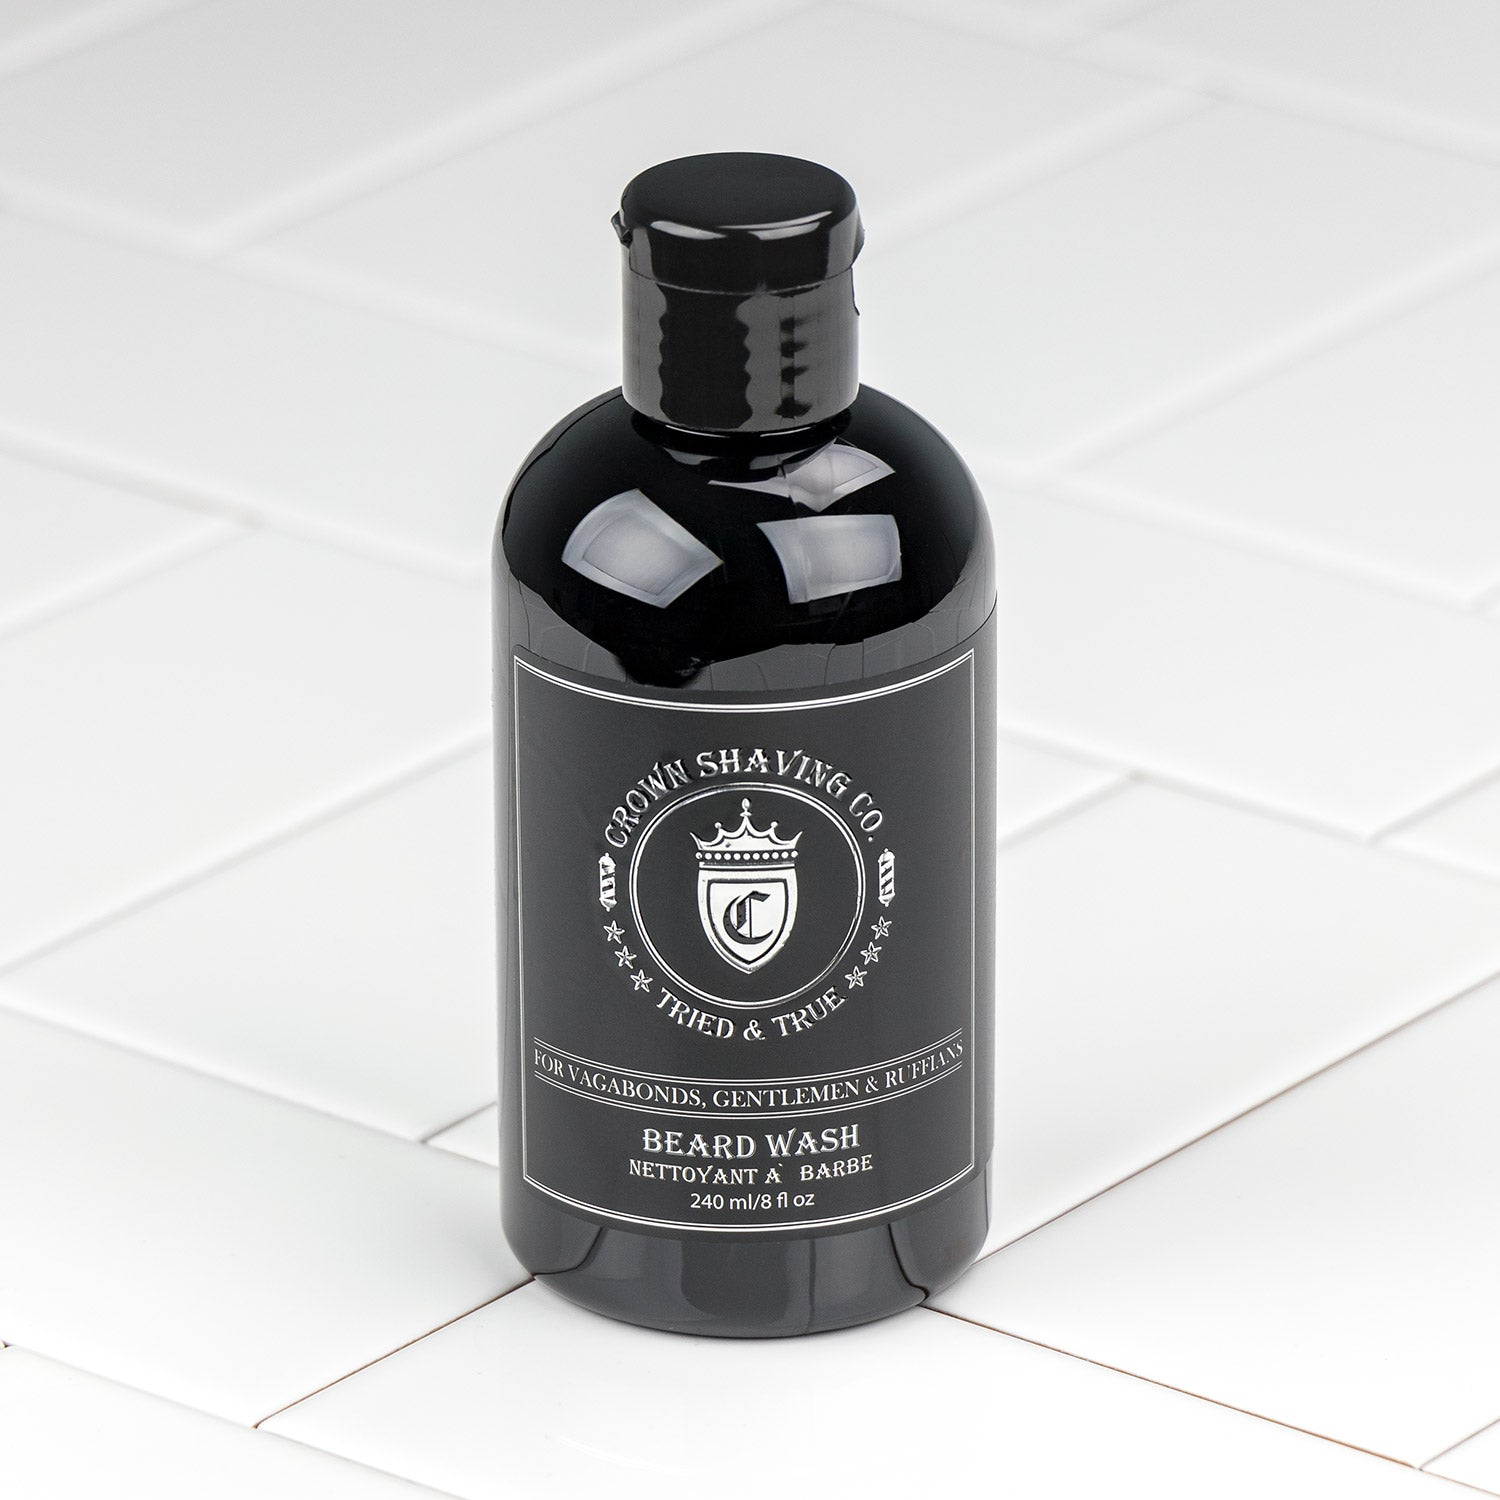 Crown Shaving Co. Beard Wash 240mL